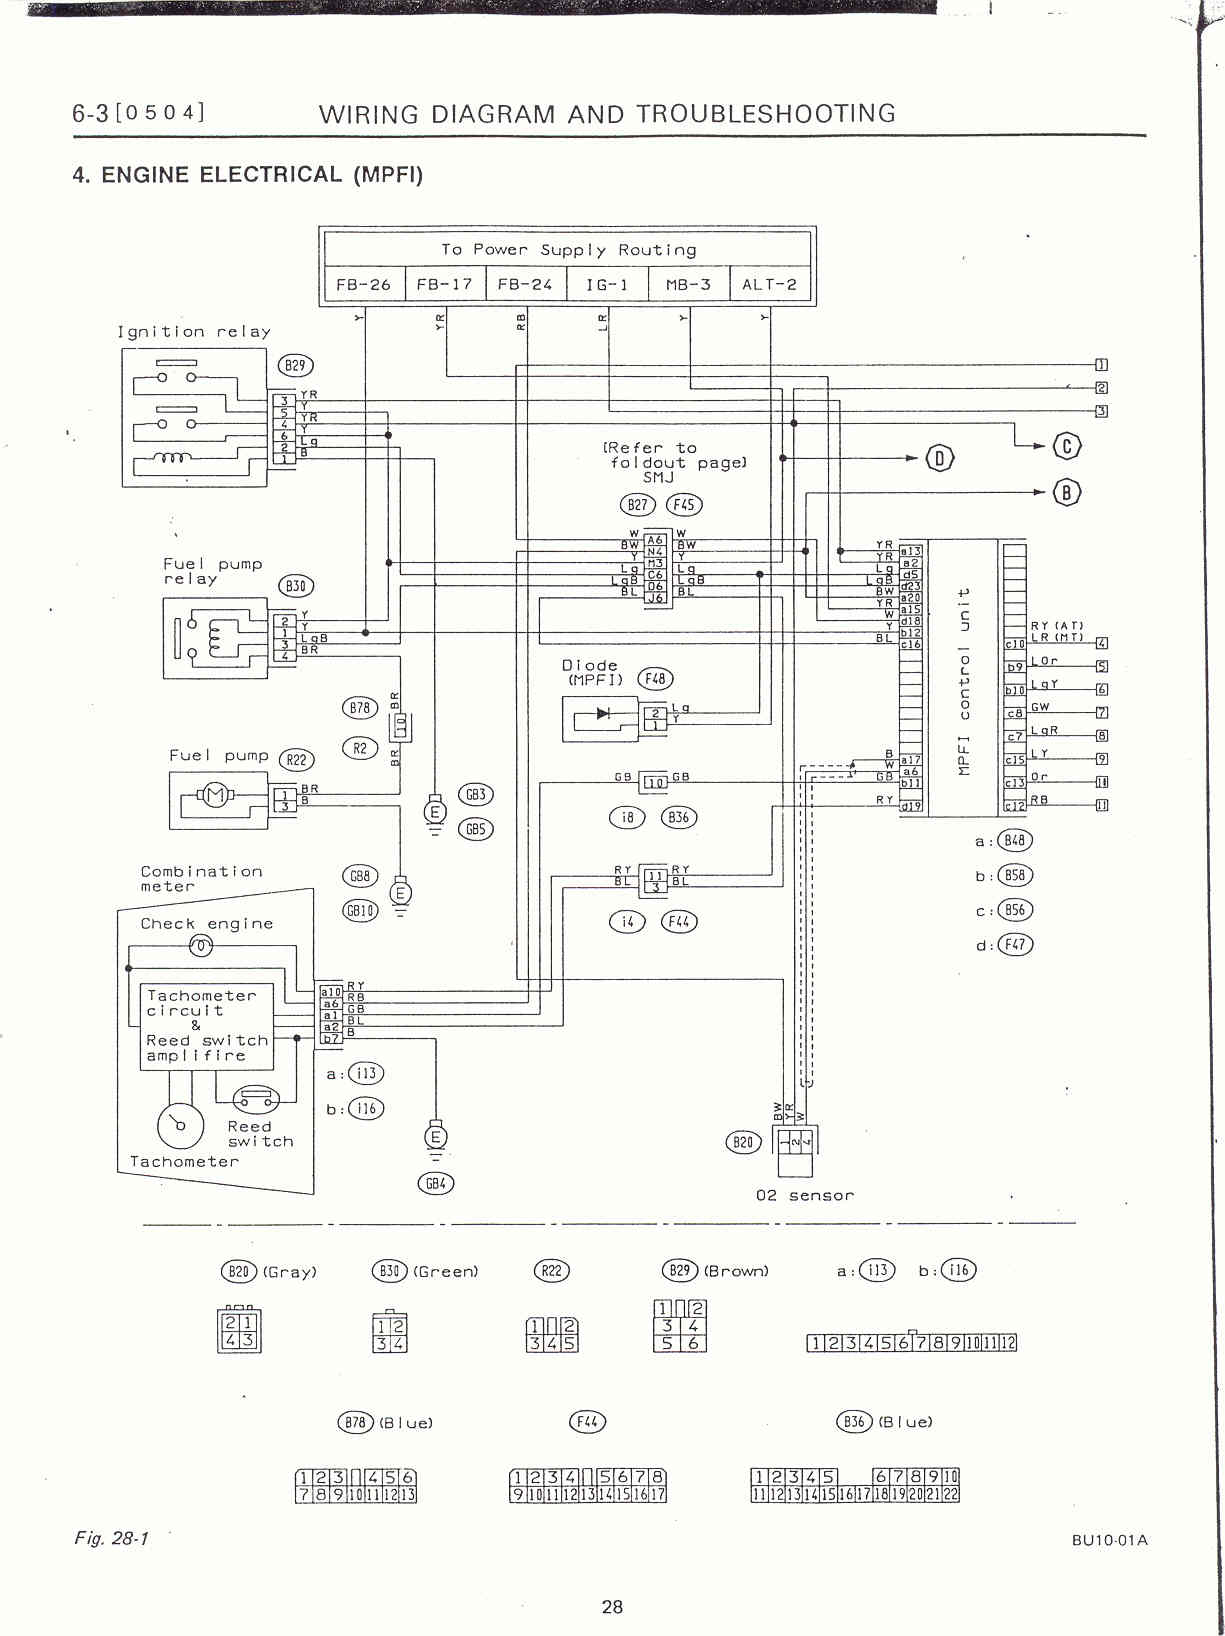 Subaru Central Locking Wiring Diagram on subaru air conditioning diagram, subaru motor diagram, subaru outback wiring layout, subaru parts diagram, subaru radio wiring harness, subaru generator diagram, subaru body diagram, subaru coolant diagram, subaru electrical diagrams, subaru front axle diagram, subaru relay diagram, subaru alternator wiring, subaru engine compartment diagram, subaru electrical schematics, subaru drivetrain diagram, subaru fuel diagram, subaru charging system, subaru transaxle diagram, subaru transmission diagram, subaru fuse diagram,